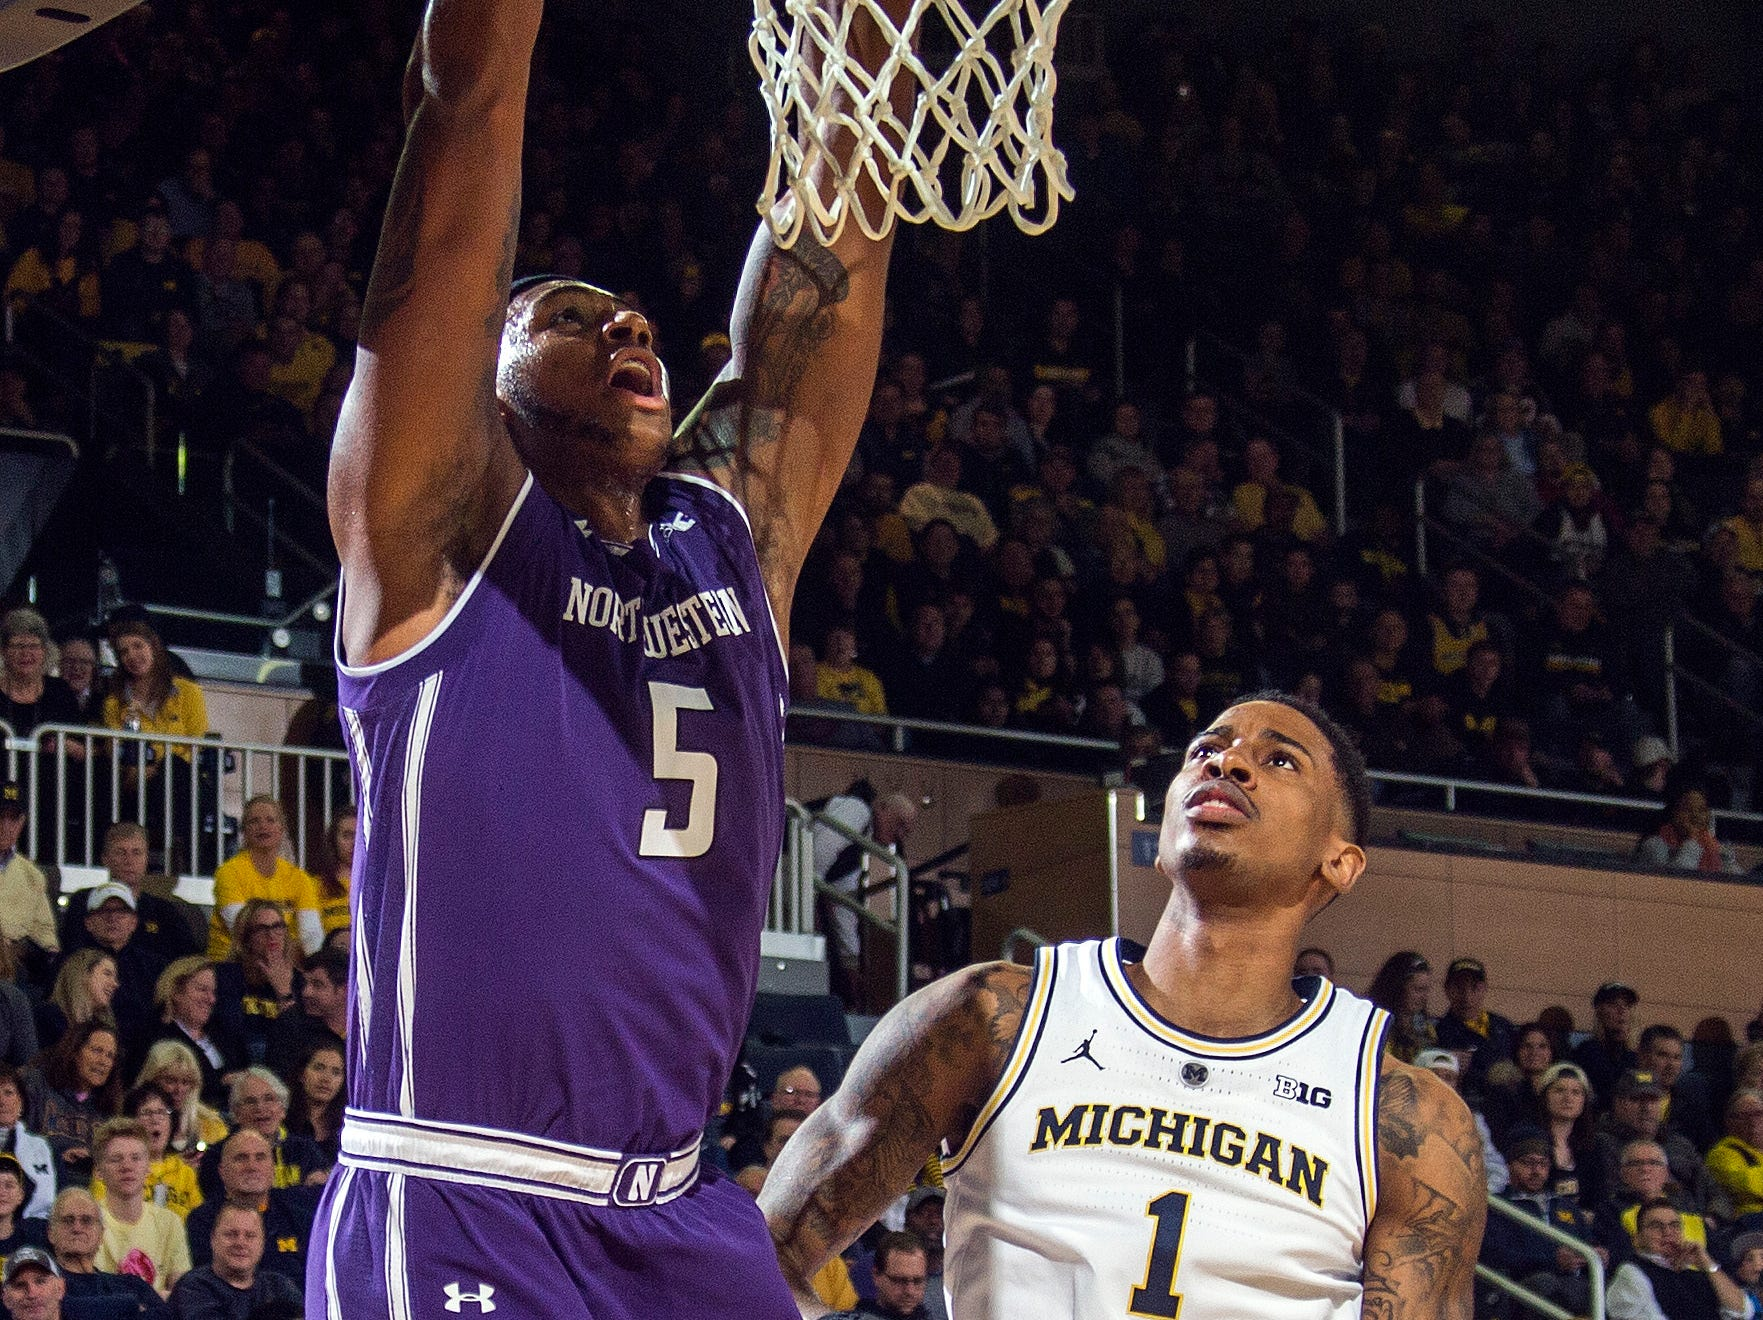 Northwestern center Dererk Pardon (5) dunks next to Michigan guard Charles Matthews (1) in the first half of an NCAA college basketball game at Crisler Center in Ann Arbor, Mich., Sunday, Jan. 13, 2019. (AP Photo/Tony Ding)